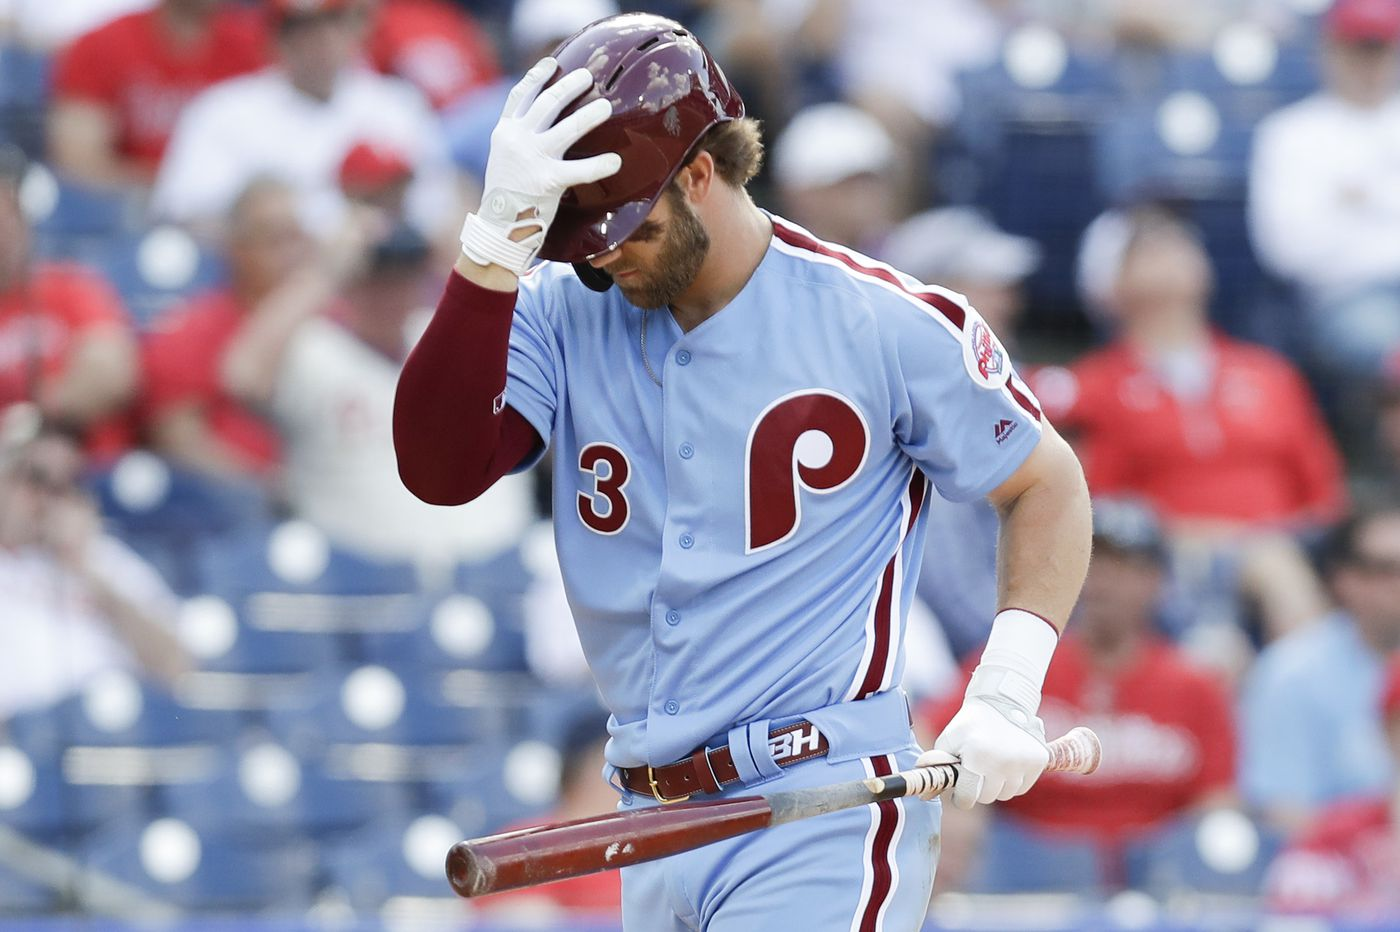 Phillies need Bryce Harper to emerge from slump if they want to be among baseball's elite | Bob Brookover